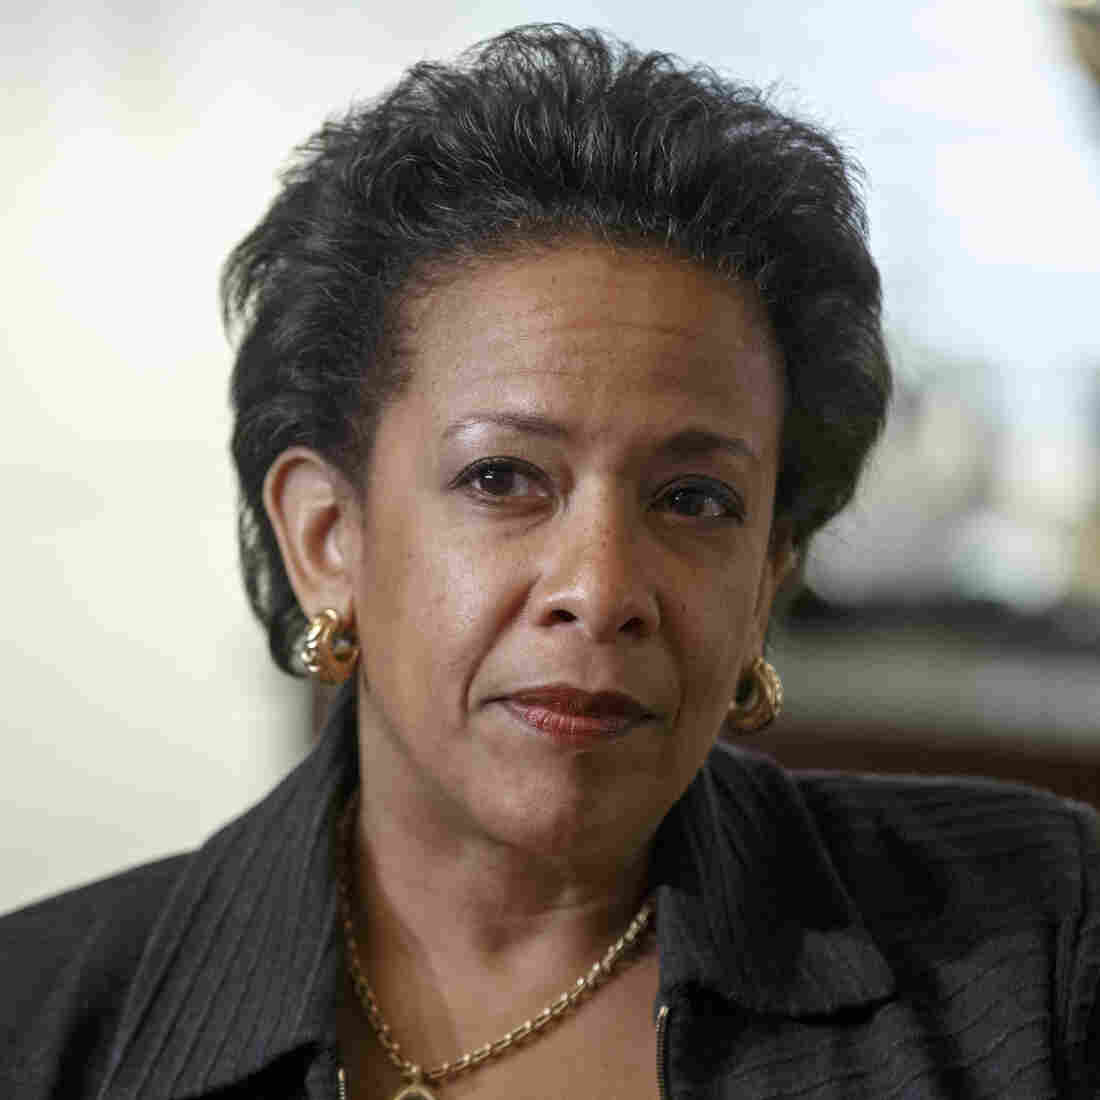 Tough Attorney General Pick Loretta Lynch Vies For Senate Confirmation